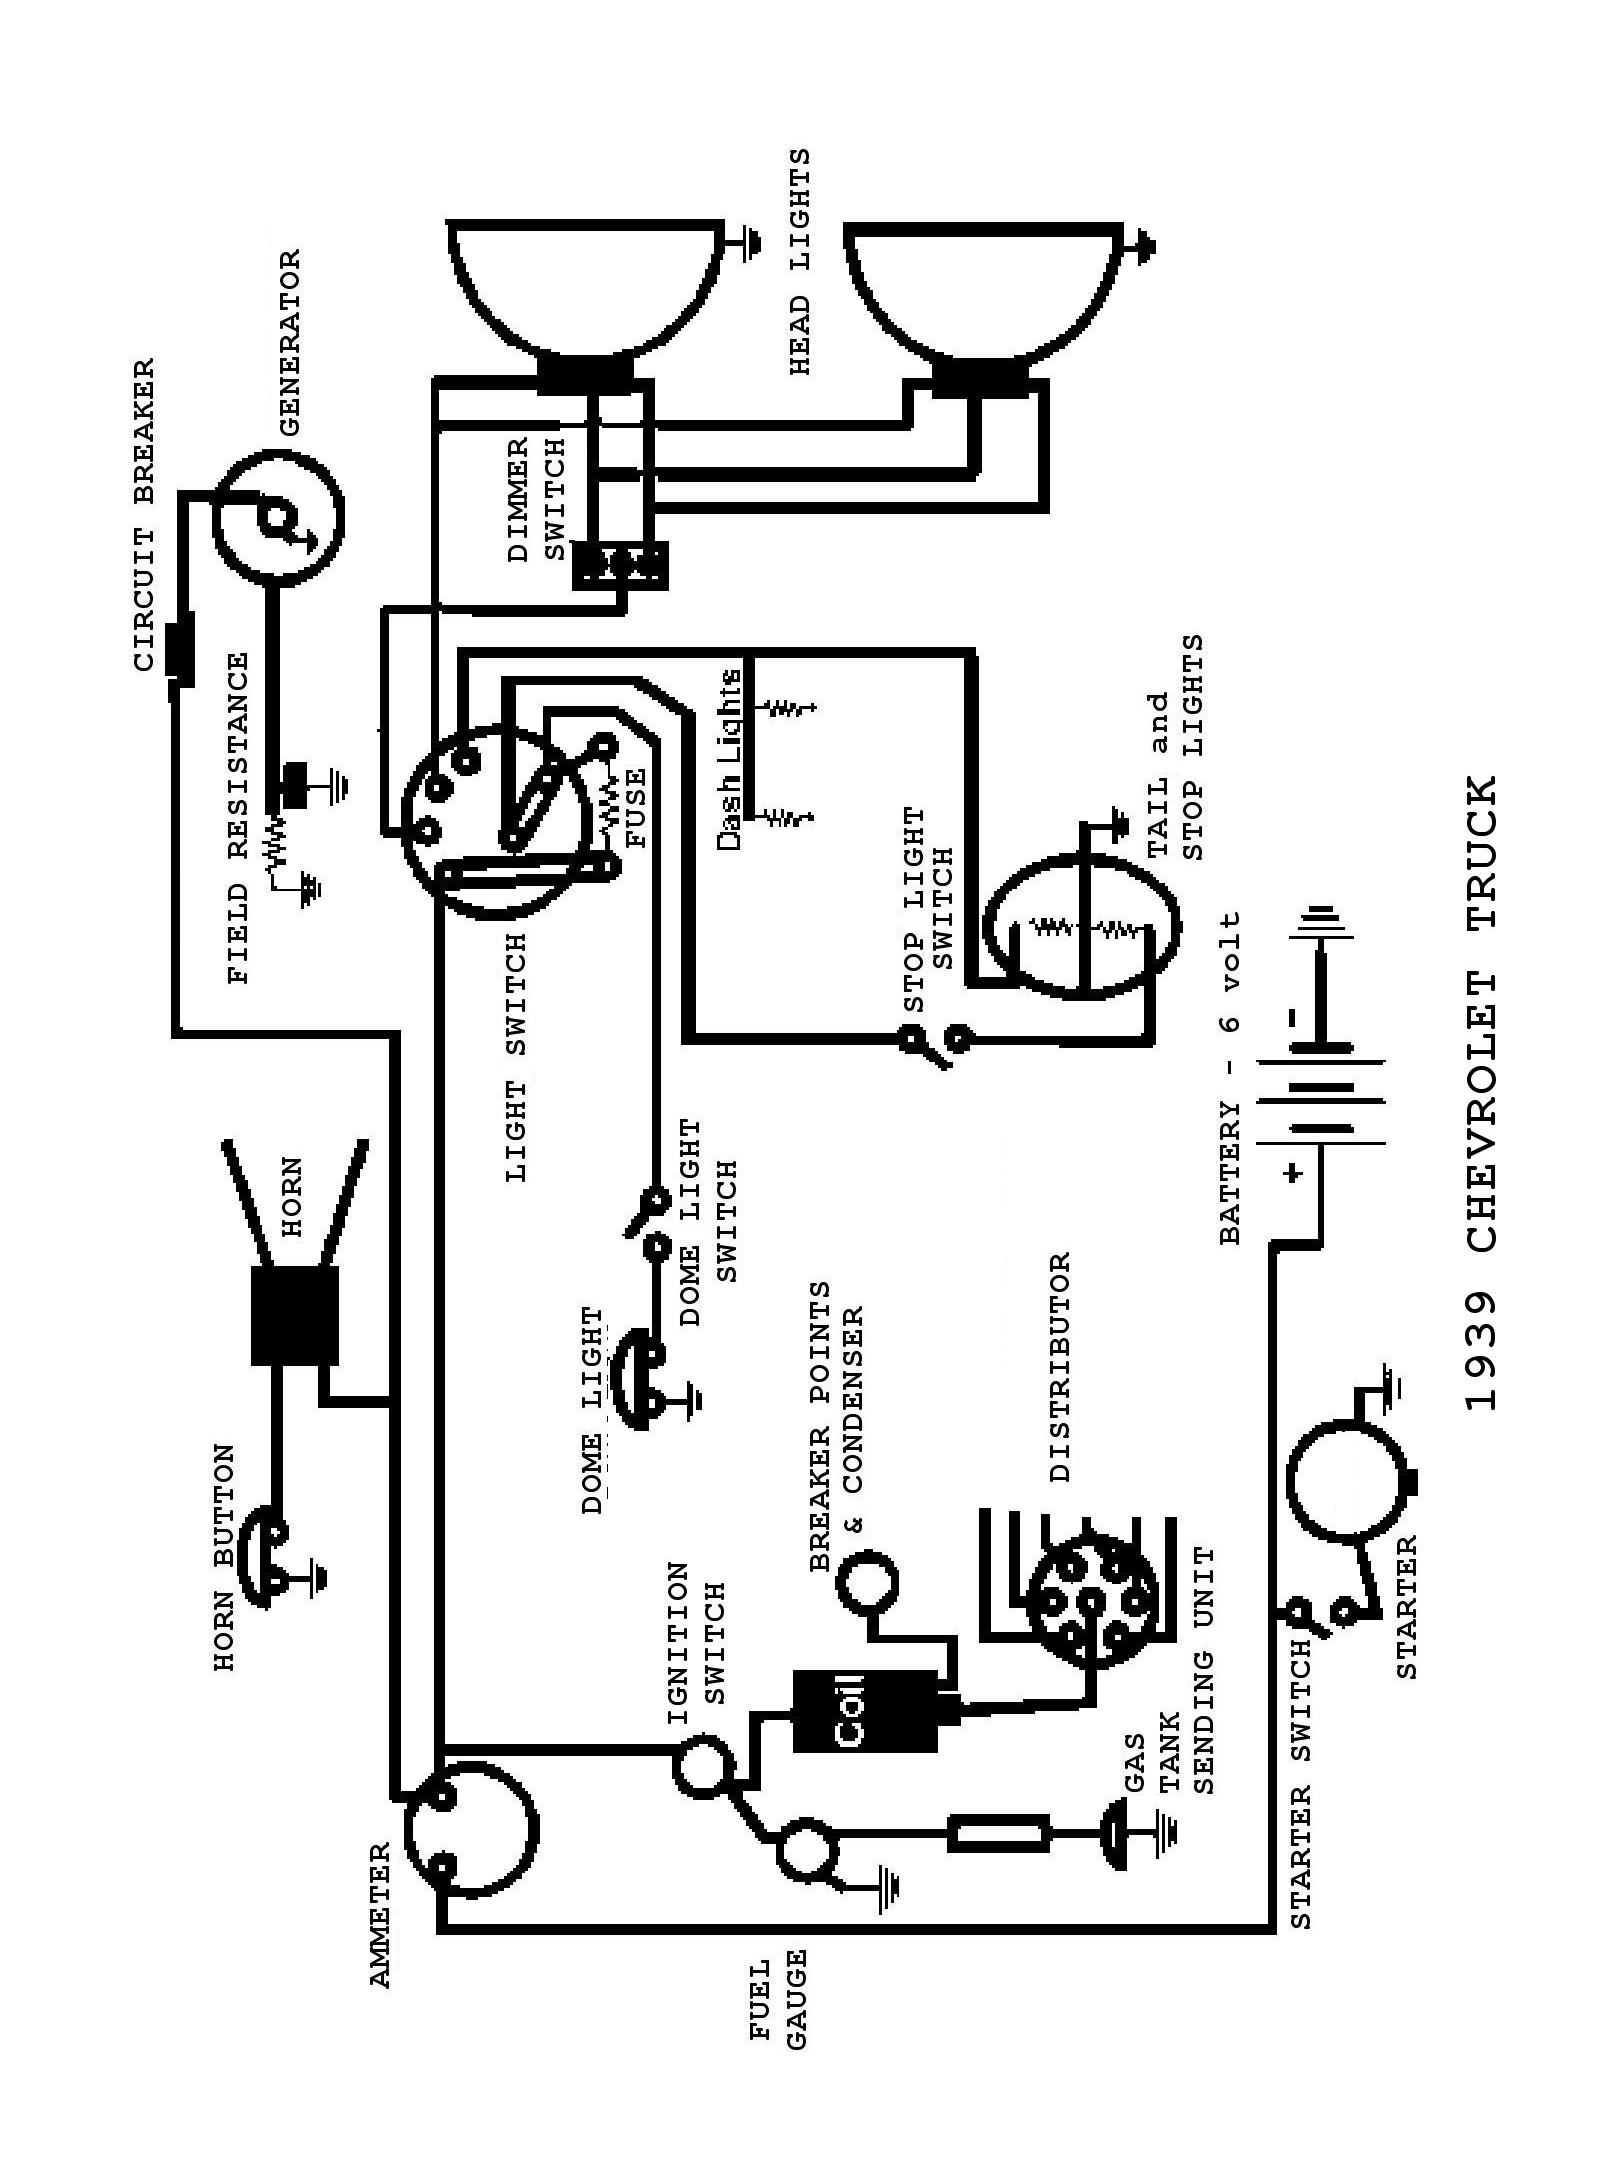 39truck ihc truck wiring diagrams mazda truck wiring diagrams \u2022 free 1979 Corvette Fuse Box Diagram at gsmportal.co